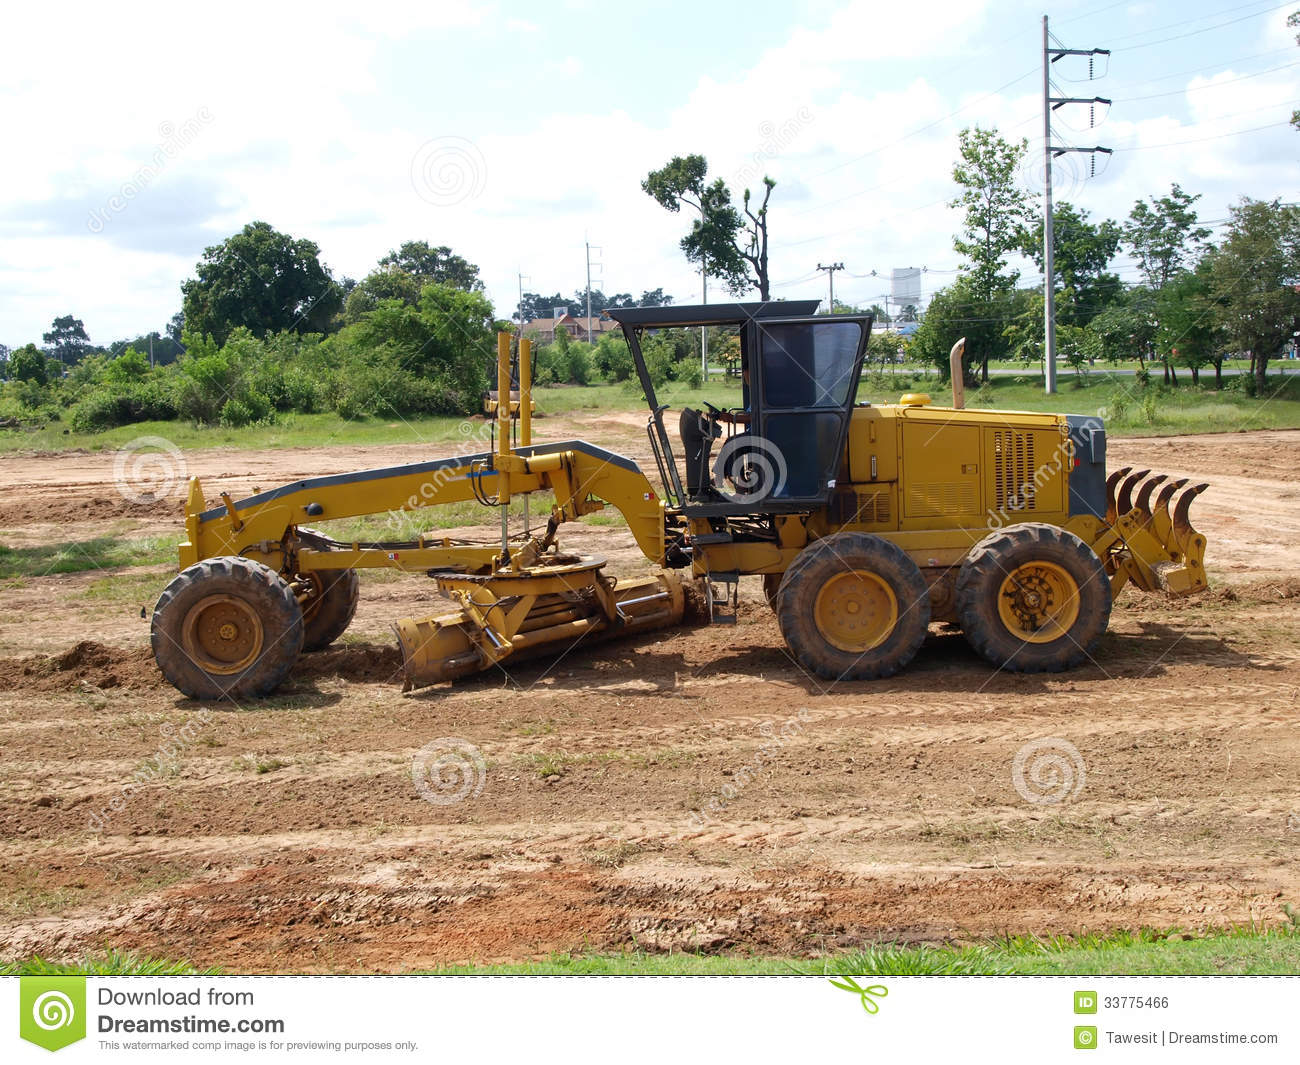 Royalty free stock image tractor heavy construction equipment